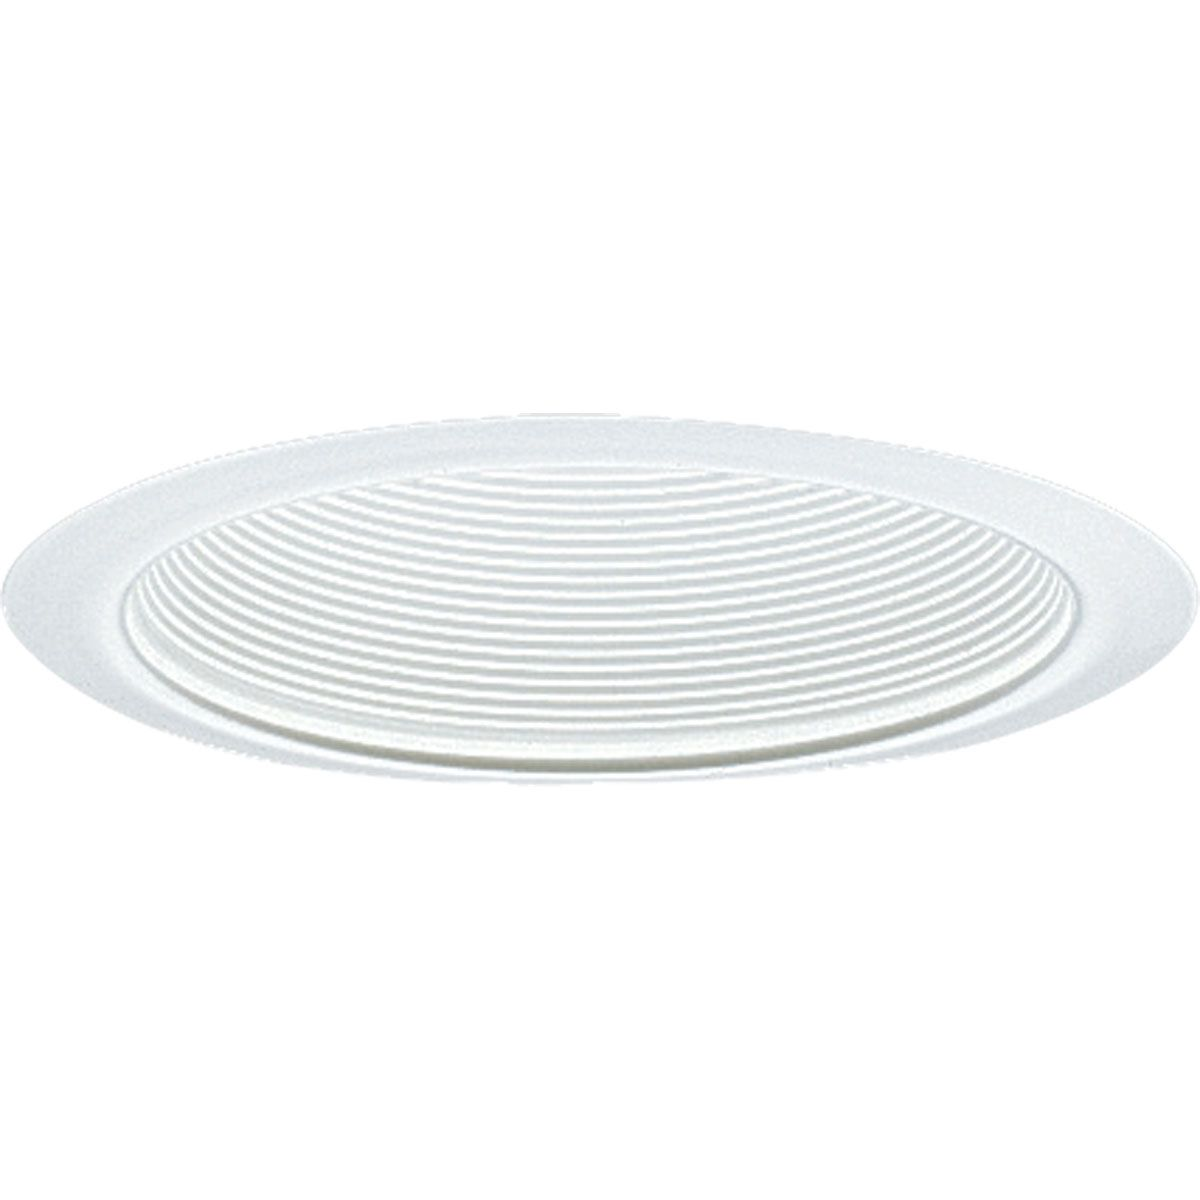 PROP8063-28 STEP BAFFLE; WHITE; 6 INCH NOMINAL APERTURE SIZE; ROUND APERTURE SHAPE; INSULATED CEILING; SIZE 7 3/4 INCH DIA; PROGRESS LIGHTING[R] BRAND, PROGRESS